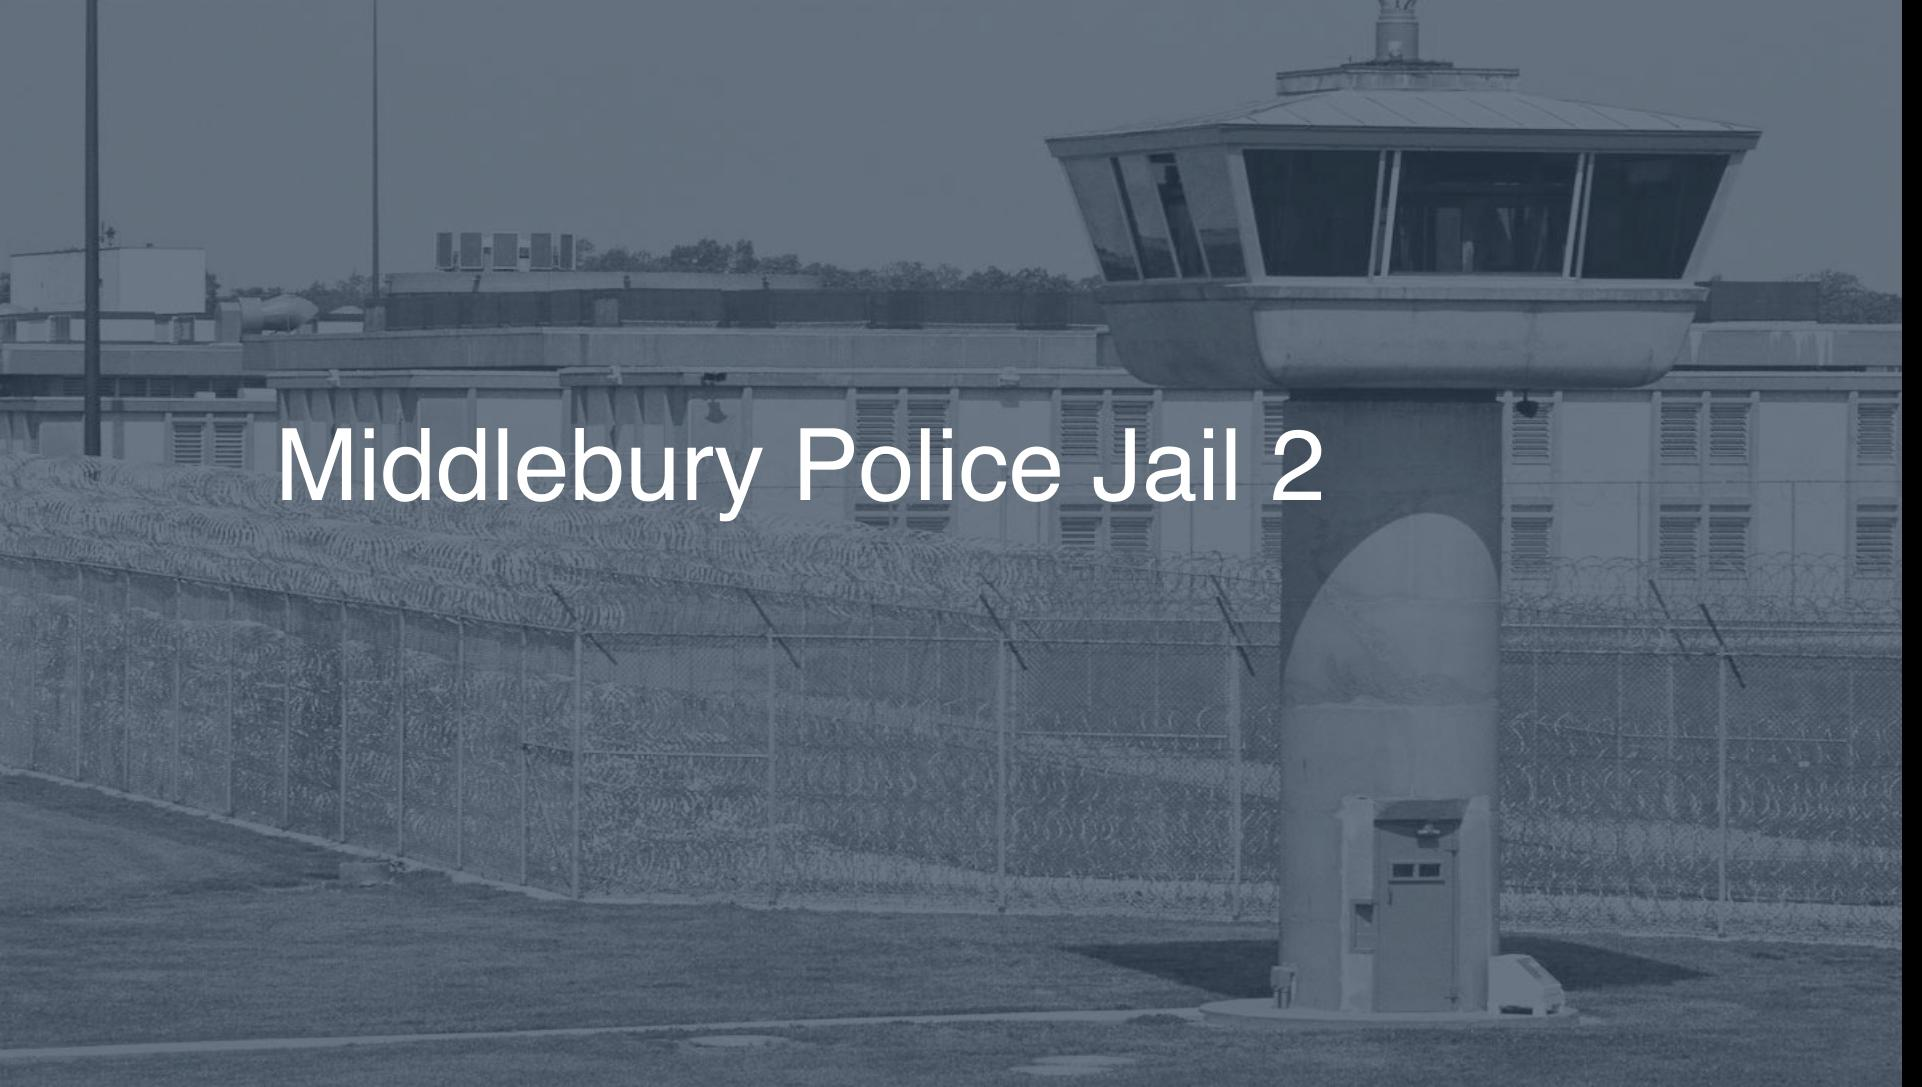 Middlebury Police Jail Inmate Search, Lookup & Services - Pigeonly